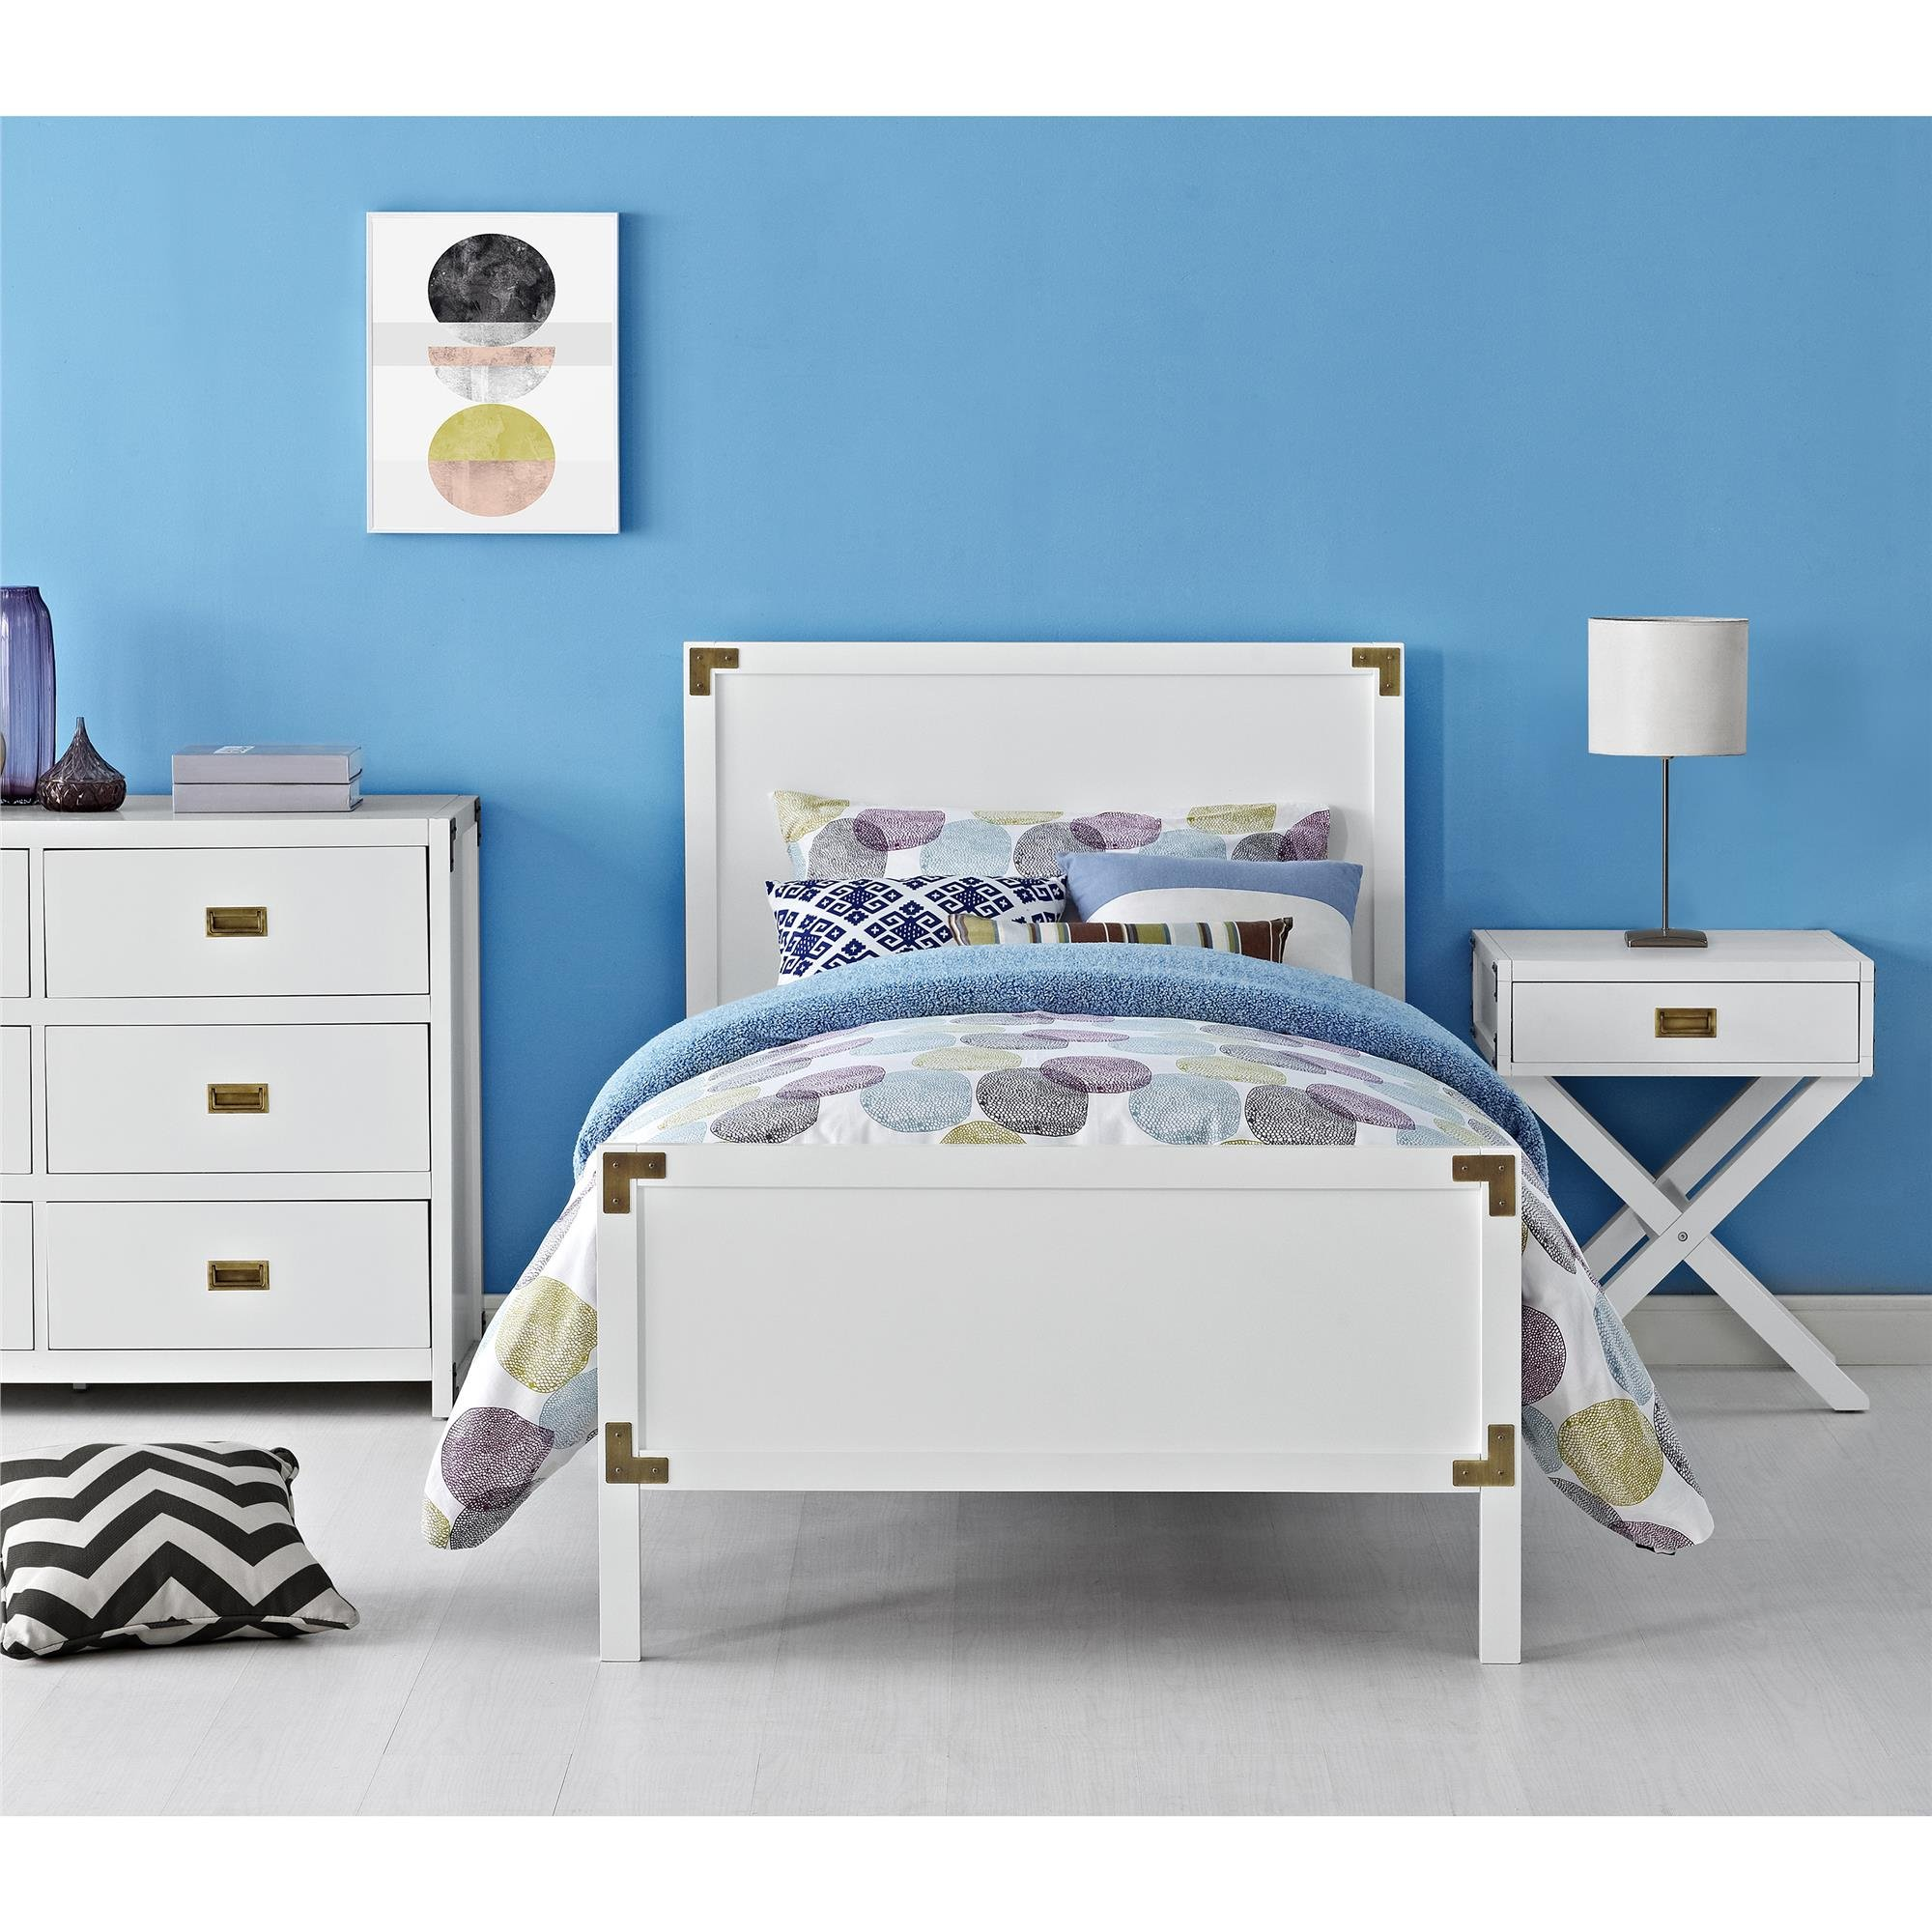 Baby Relax Miles Nightstand, White by Baby Relax (Image #6)